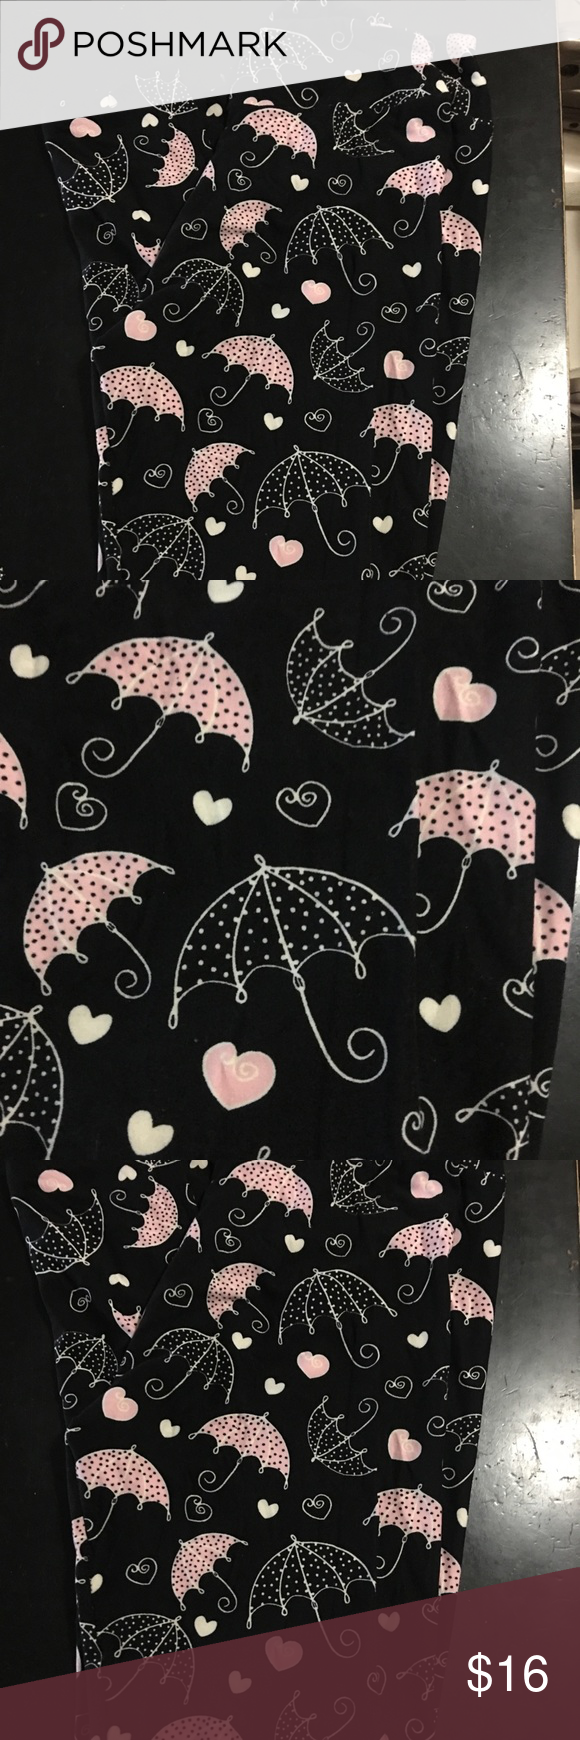 Lularoe like leggings! Super cute umbrellas! OS Super cute umbrella leggings. Brand new never worn. Same Lularoe waistband and same lula feel. Smoke free home, no funky smells Pants #cuteumbrellas Lularoe like leggings! Super cute umbrellas! OS Super cute umbrella leggings. Brand new never worn. Same Lularoe waistband and same lula feel. Smoke free home, no funky smells Pants #cuteumbrellas Lularoe like leggings! Super cute umbrellas! OS Super cute umbrella leggings. Brand new never worn. Same L #cuteumbrellas